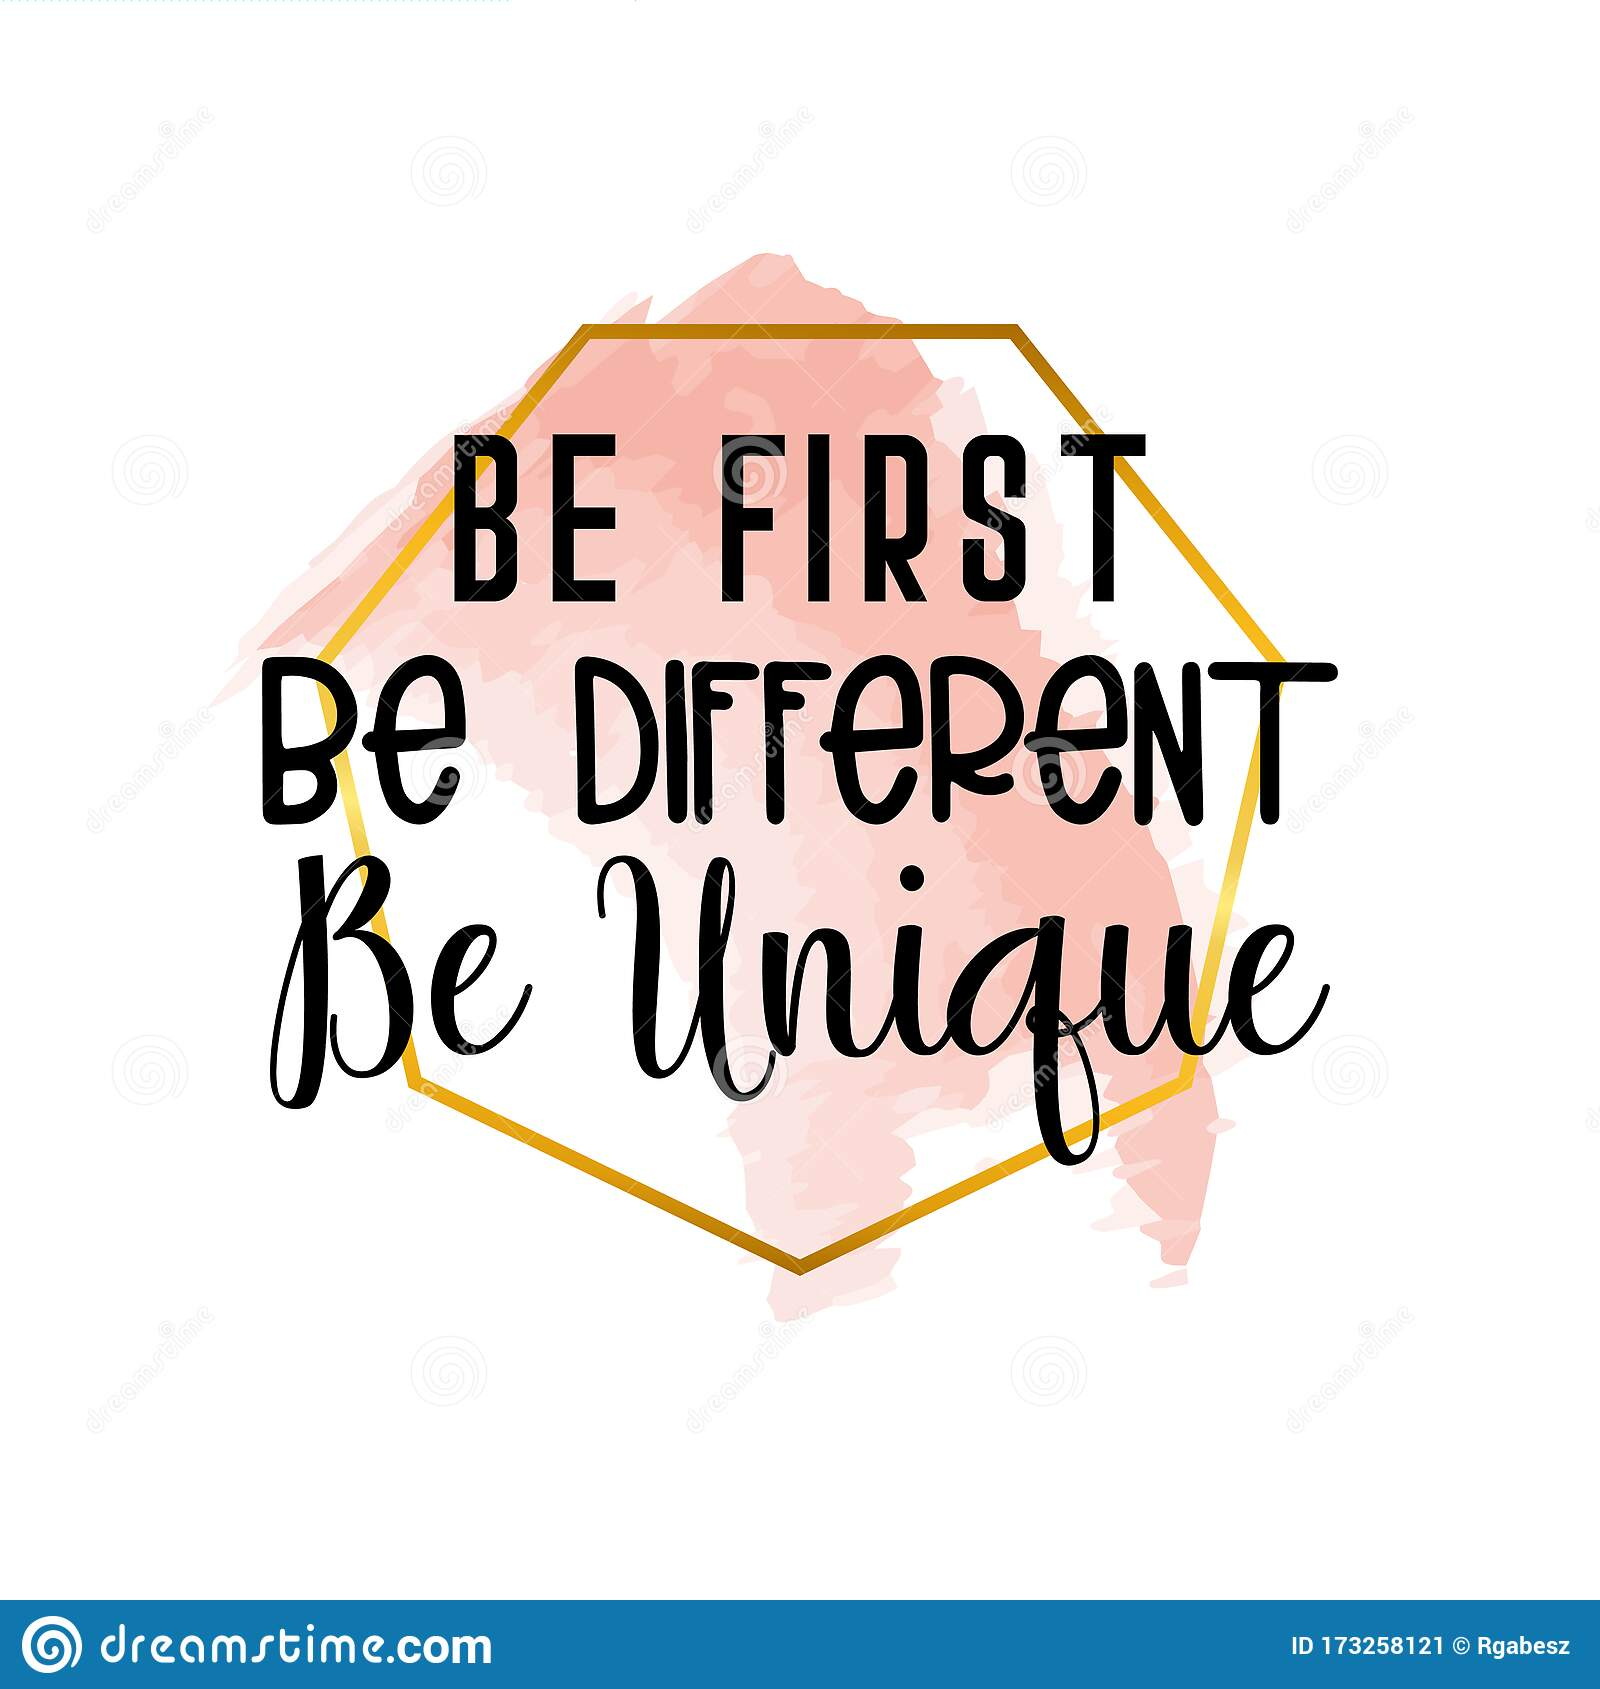 Be First Be Different Be Unique Motivational Quotes Stock Vector Illustration Of Inspiring Message 173258121